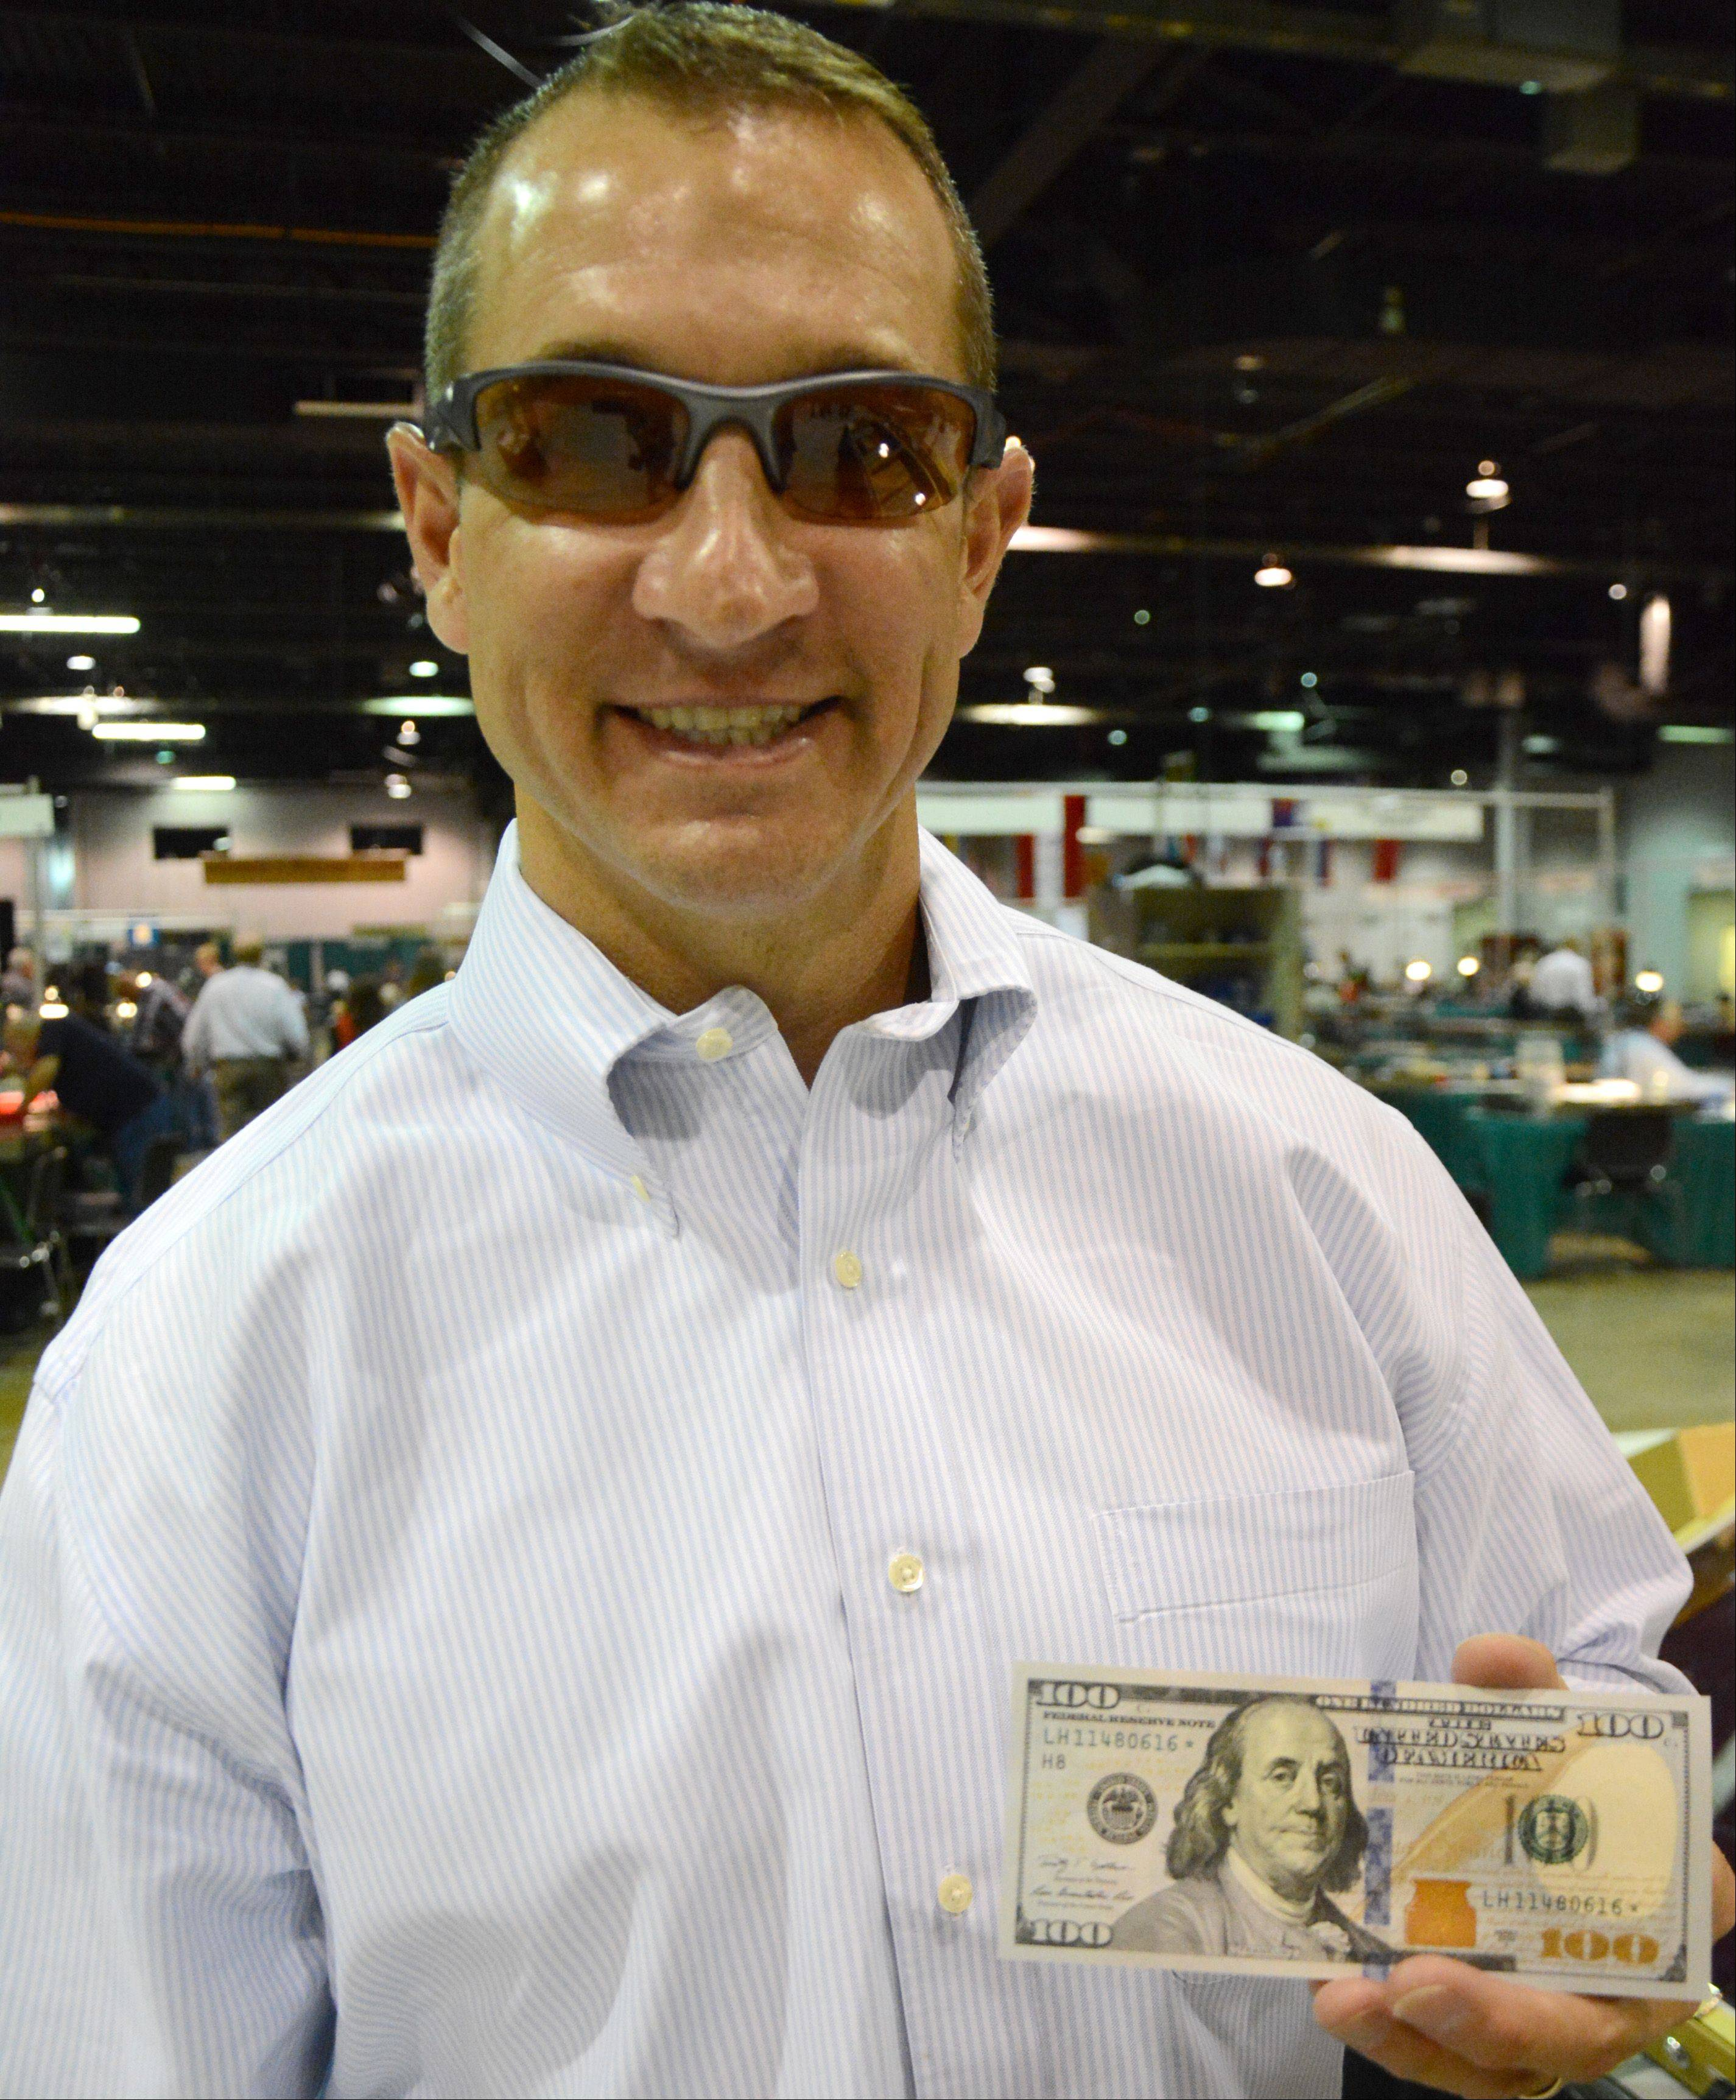 Kevin Brown, marketing manager for the Bureau of Engraving and Printing, poses with the new $100 bill. The bill will be on public display during the World's Fair of Money this week at the Donald E. Stephens Convention Center in Rosemont.